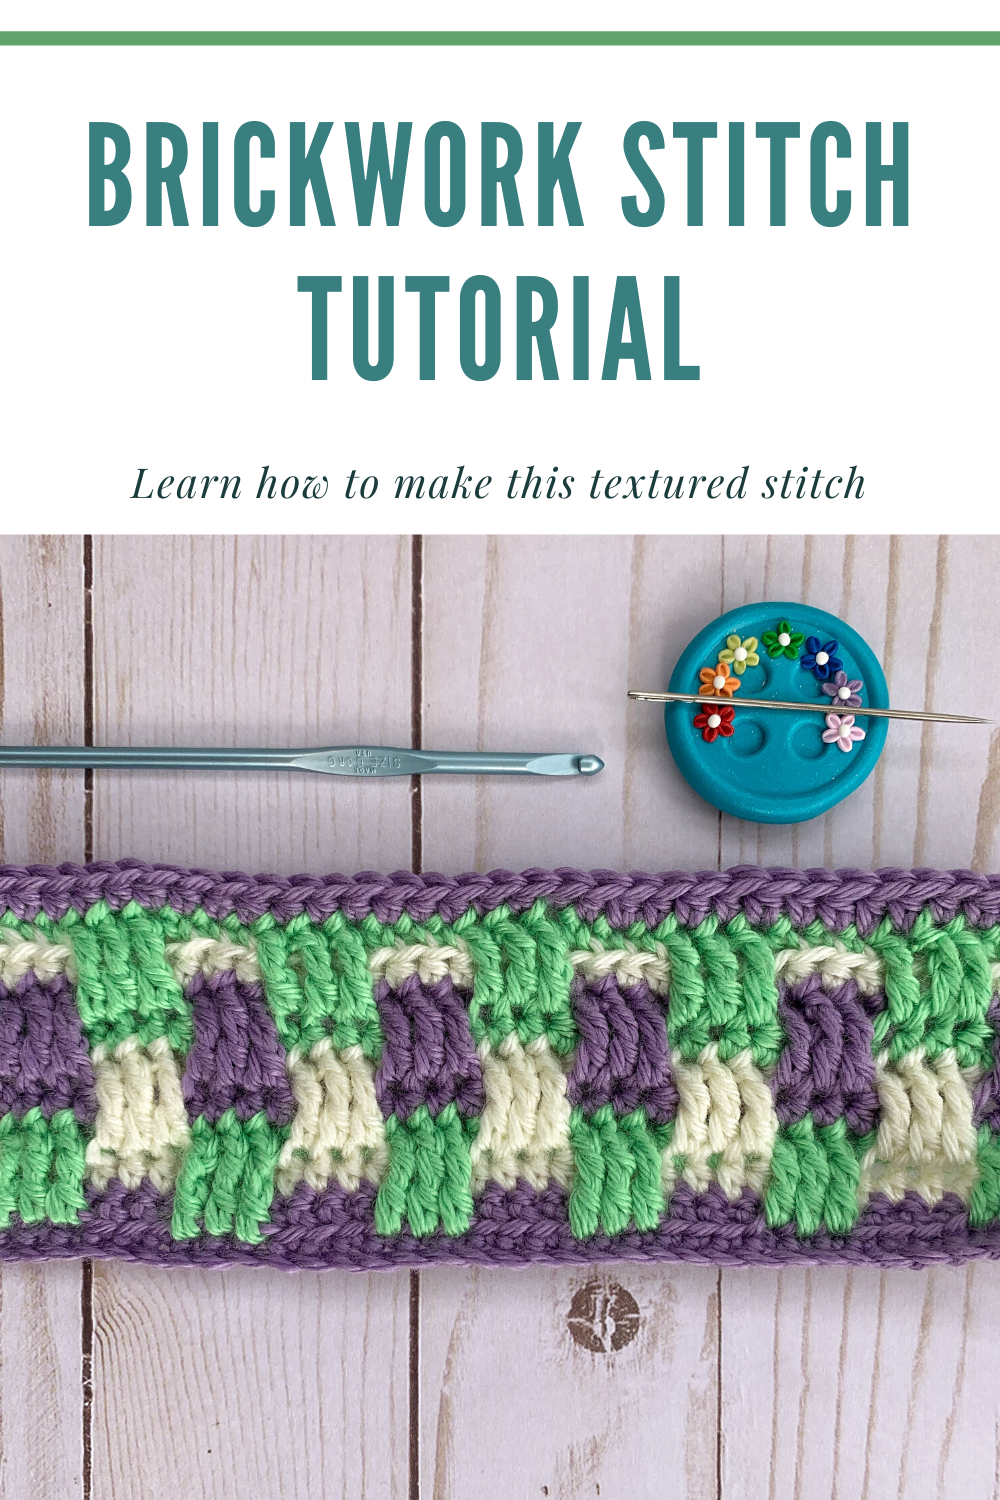 Brickwork Stitch Tutorial